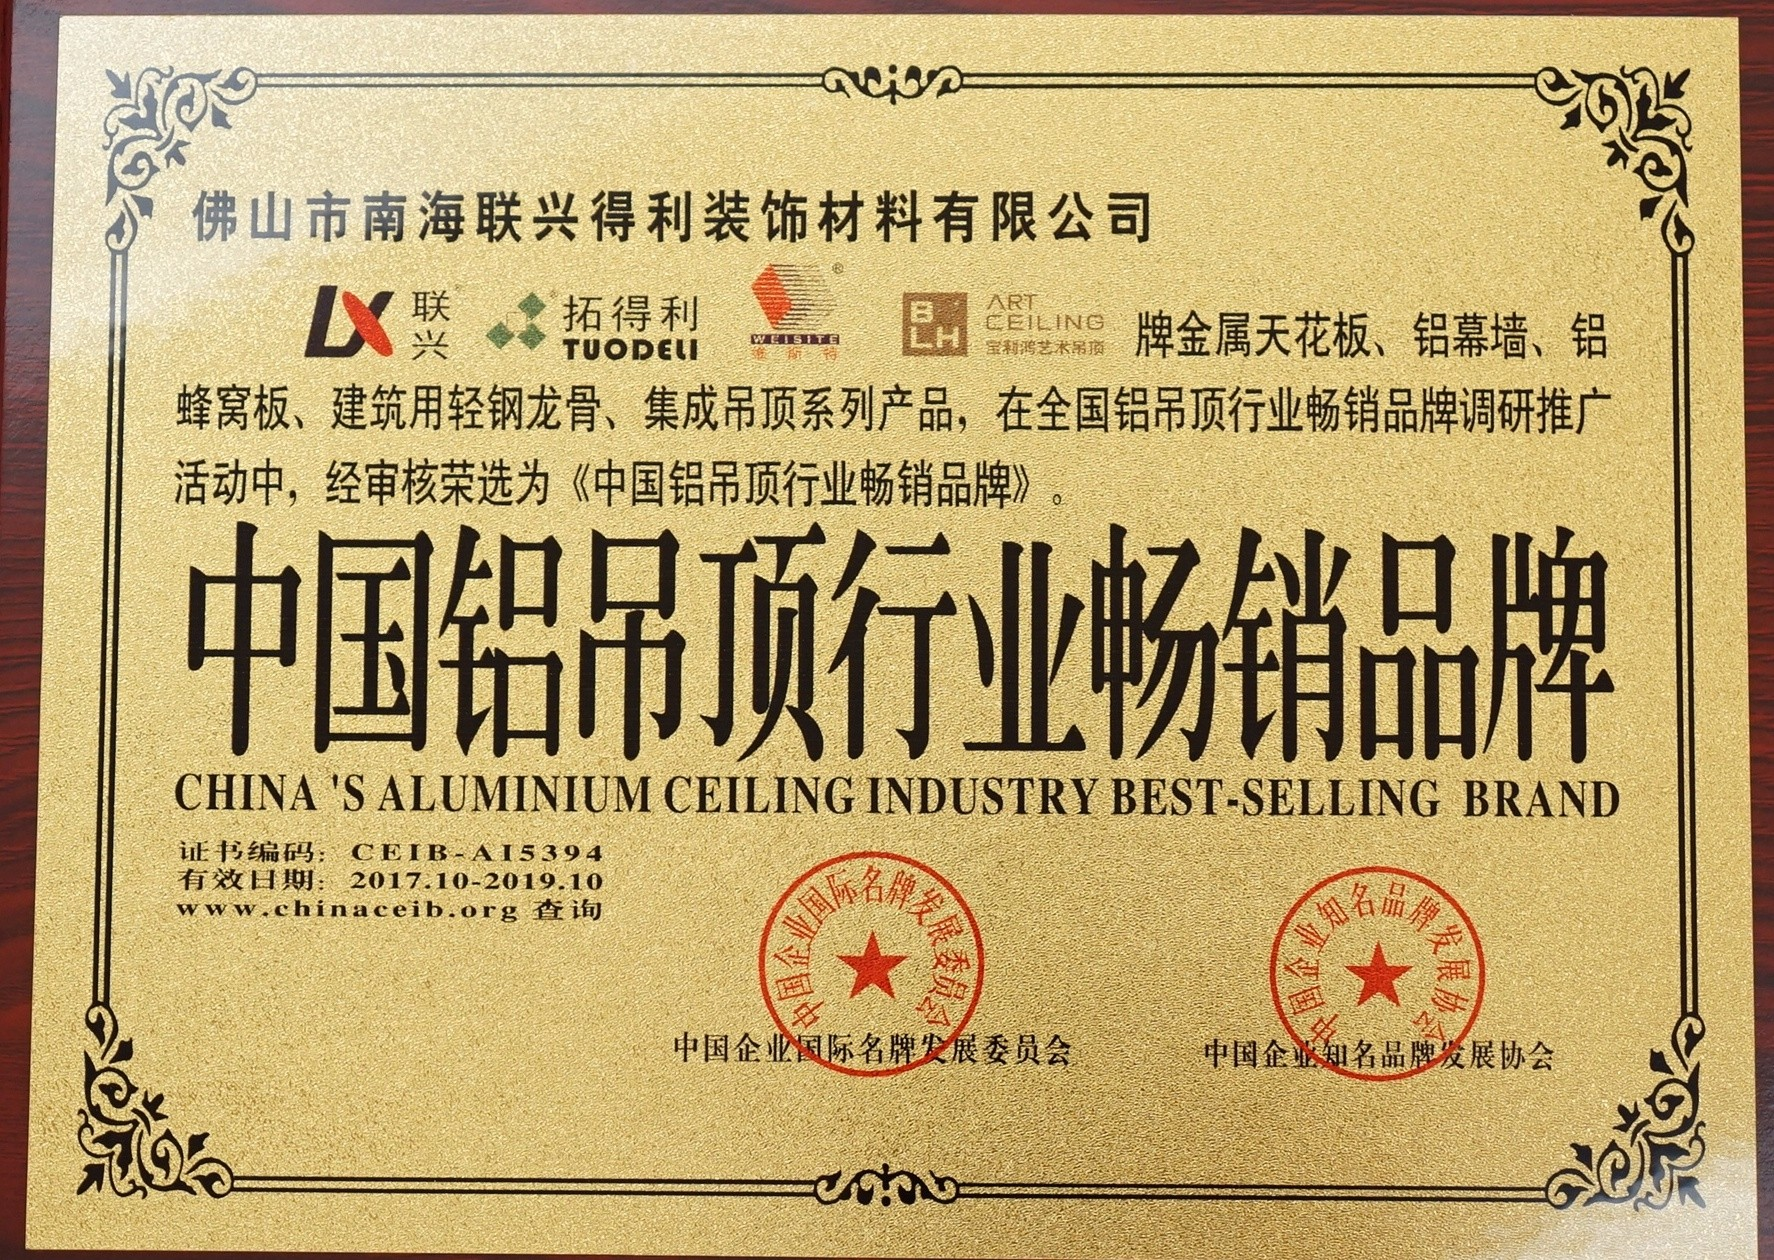 China Aluminium Ceiling Industry Best-Selling Brand